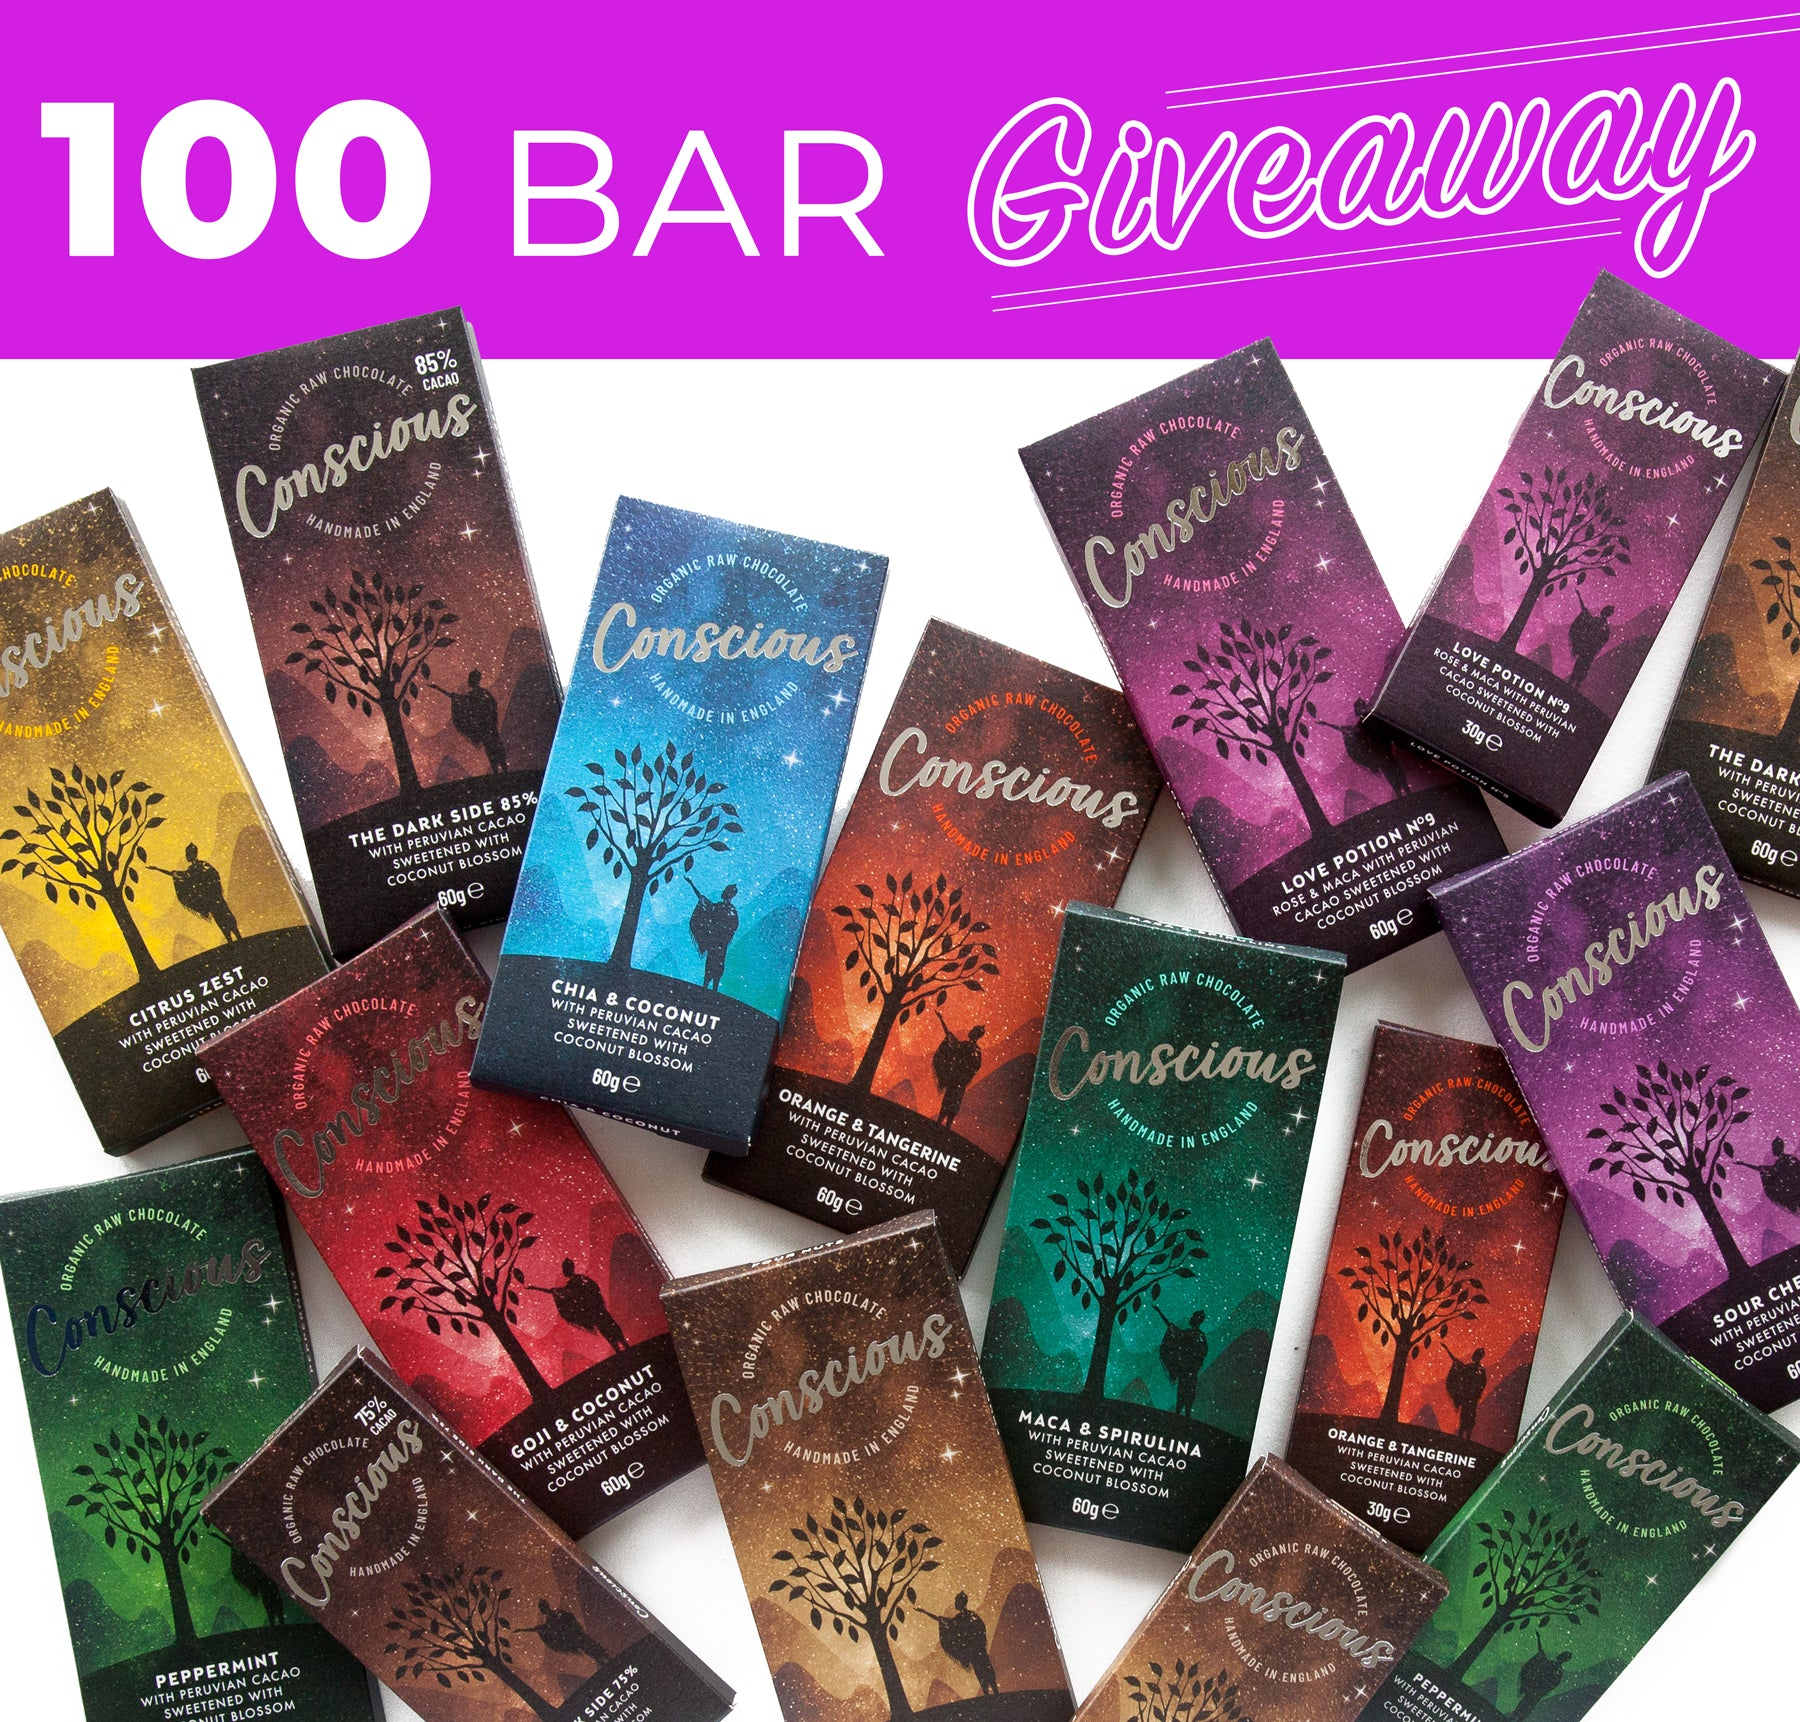 100 Bar Giveaway Update